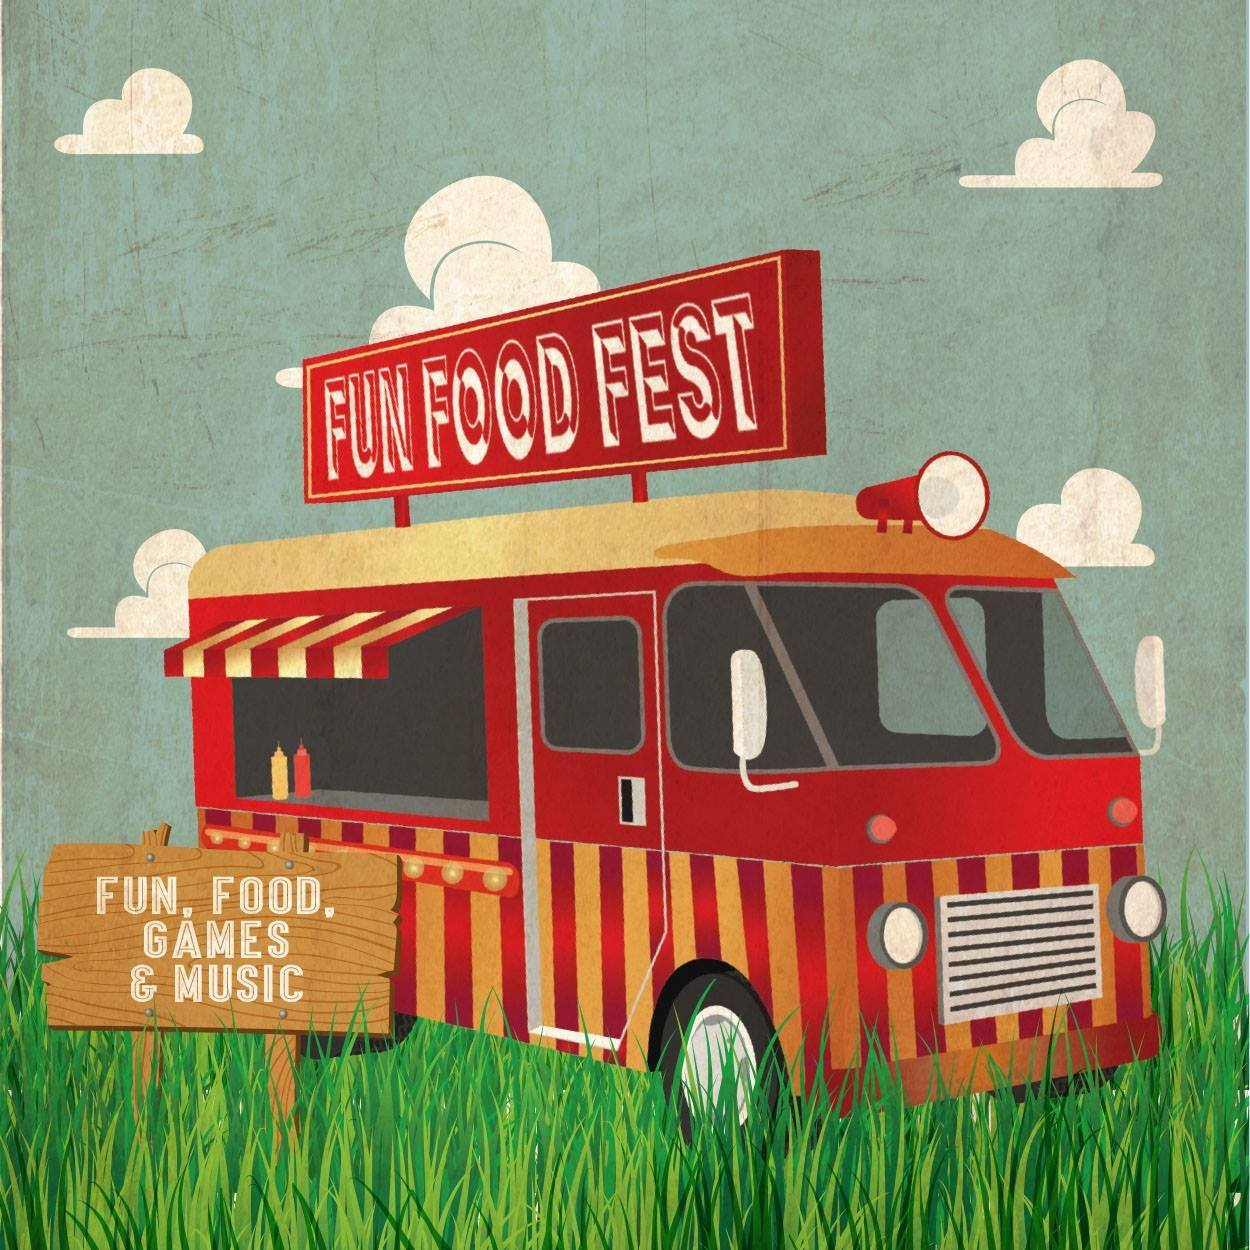 The Fun Food Fest